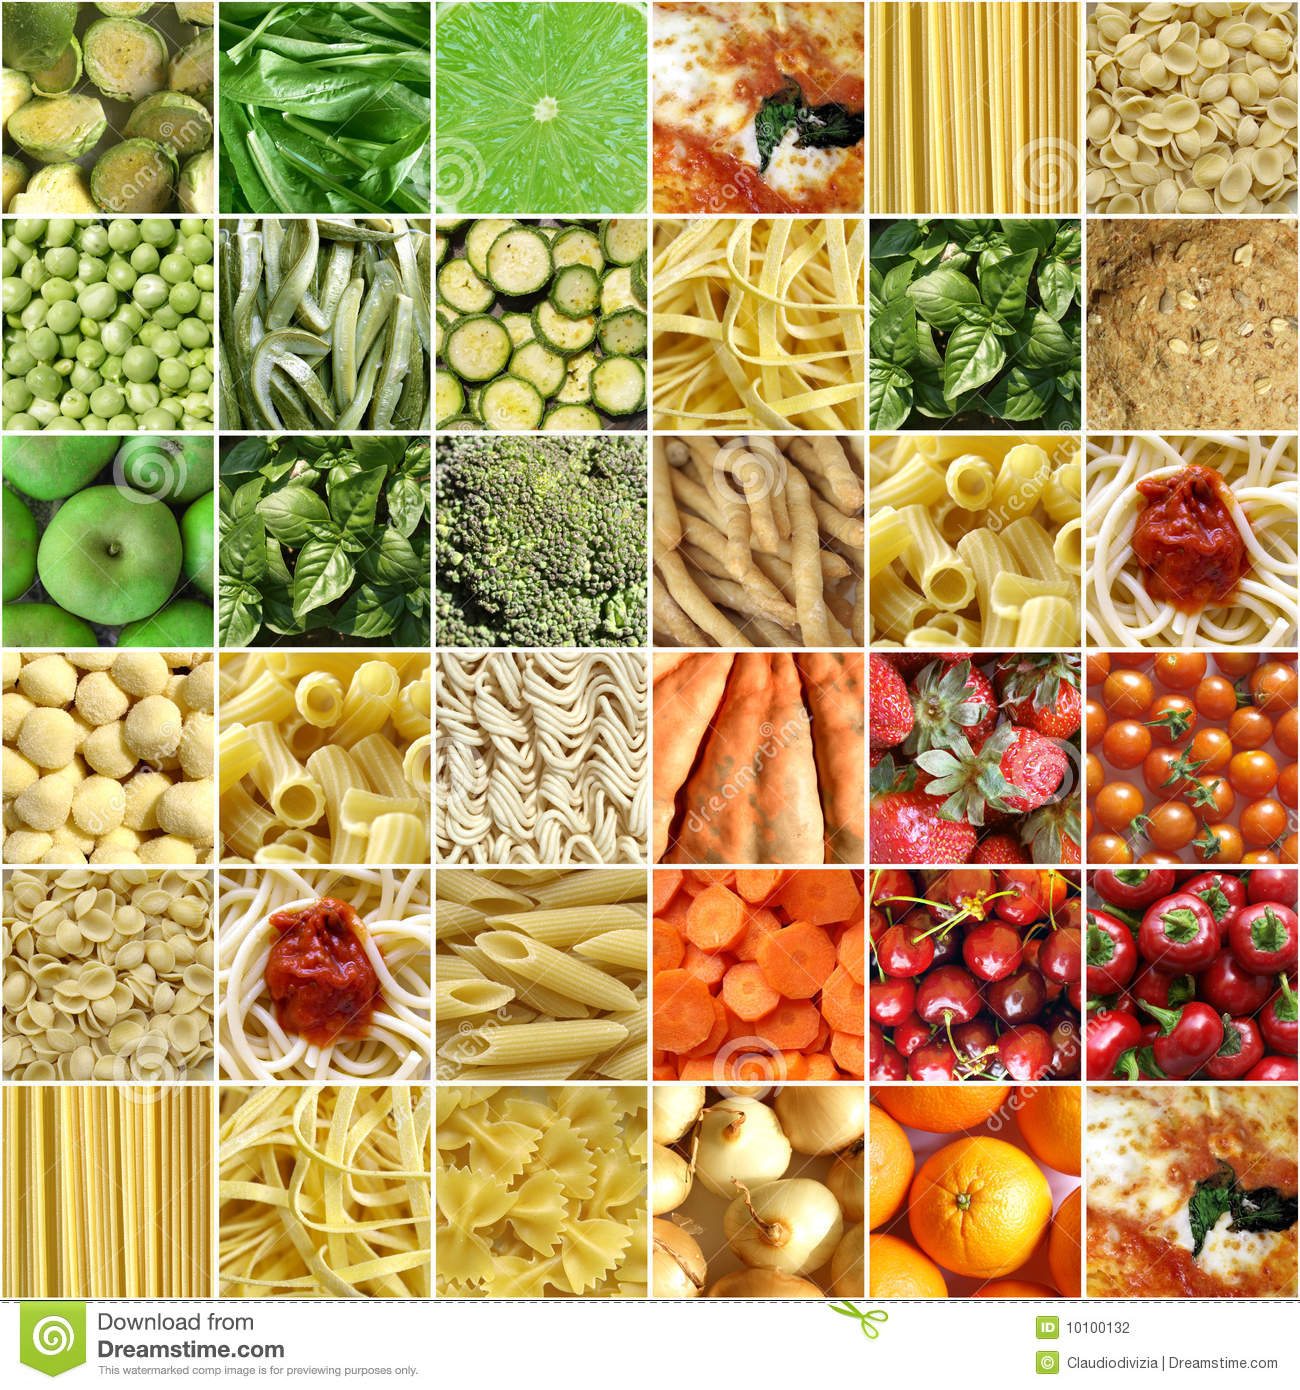 Food collage including pictures of vegetables, fruit, pasta and more.